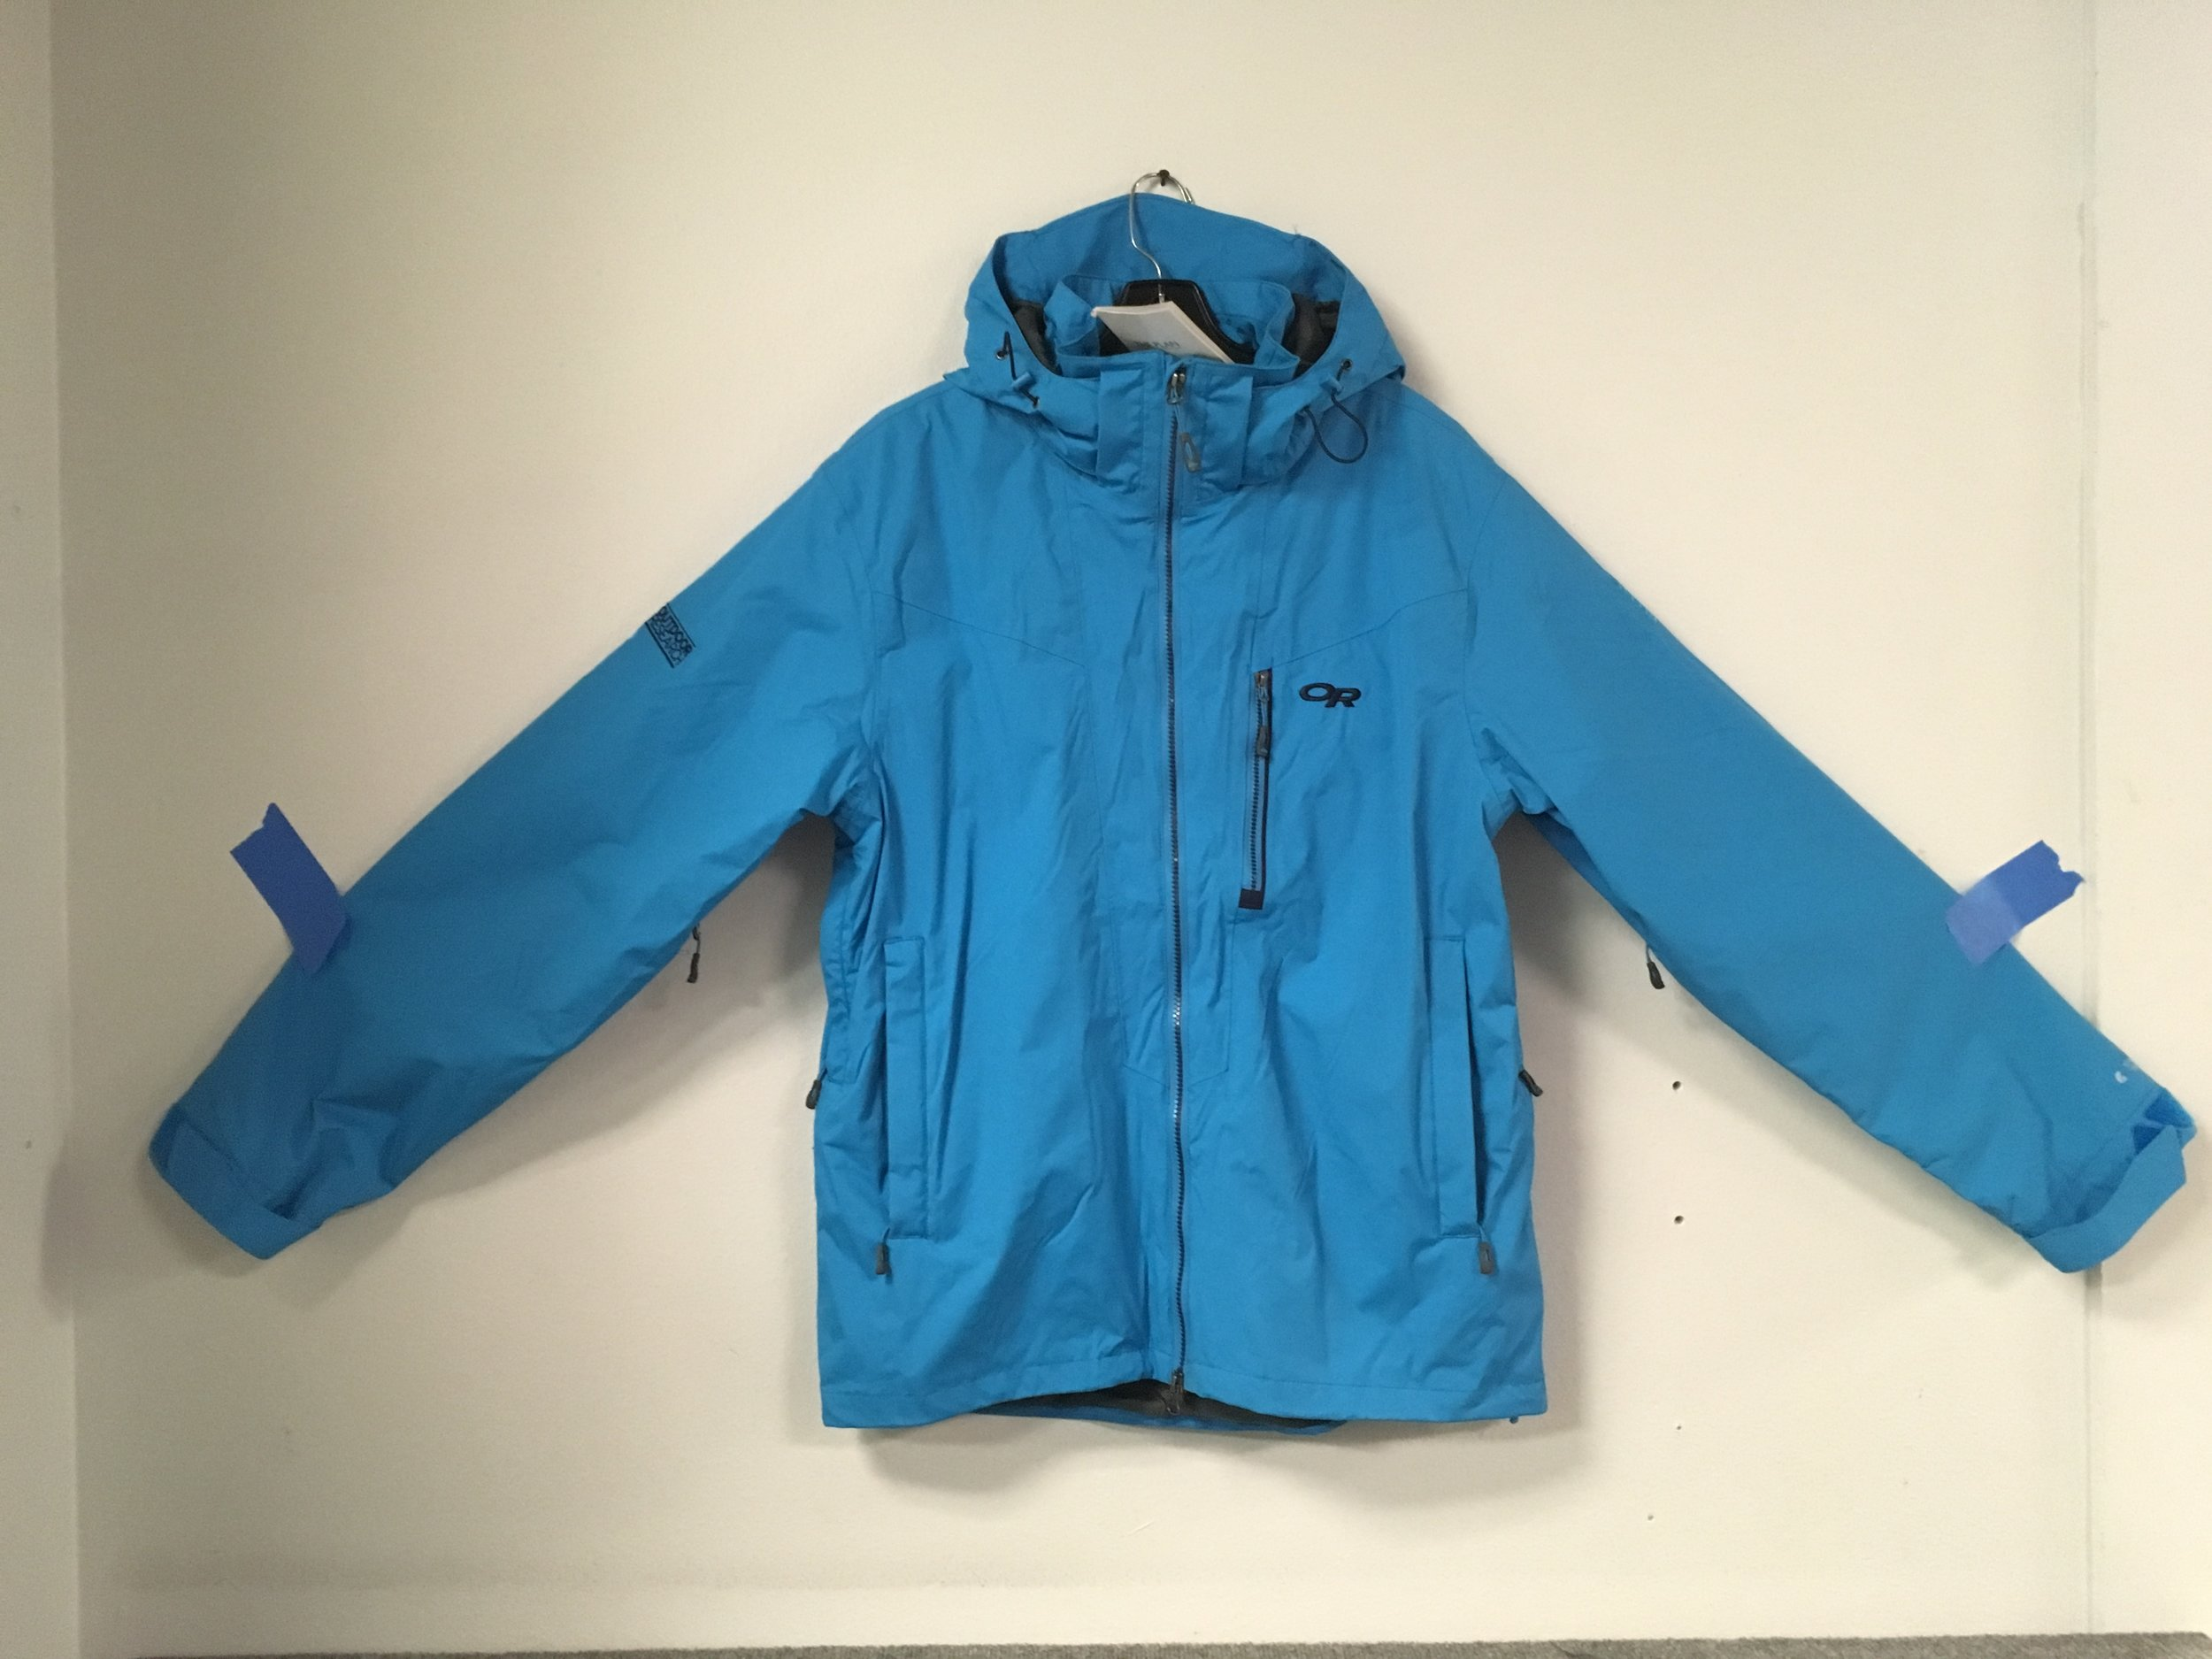 Just got OR's Igneo jacket in brand new! The Igneo features pretex fabric that is waterproof, windproof, and breathable.Retail is listed at $349 but we have you covered at $169! The size is a men's medium.